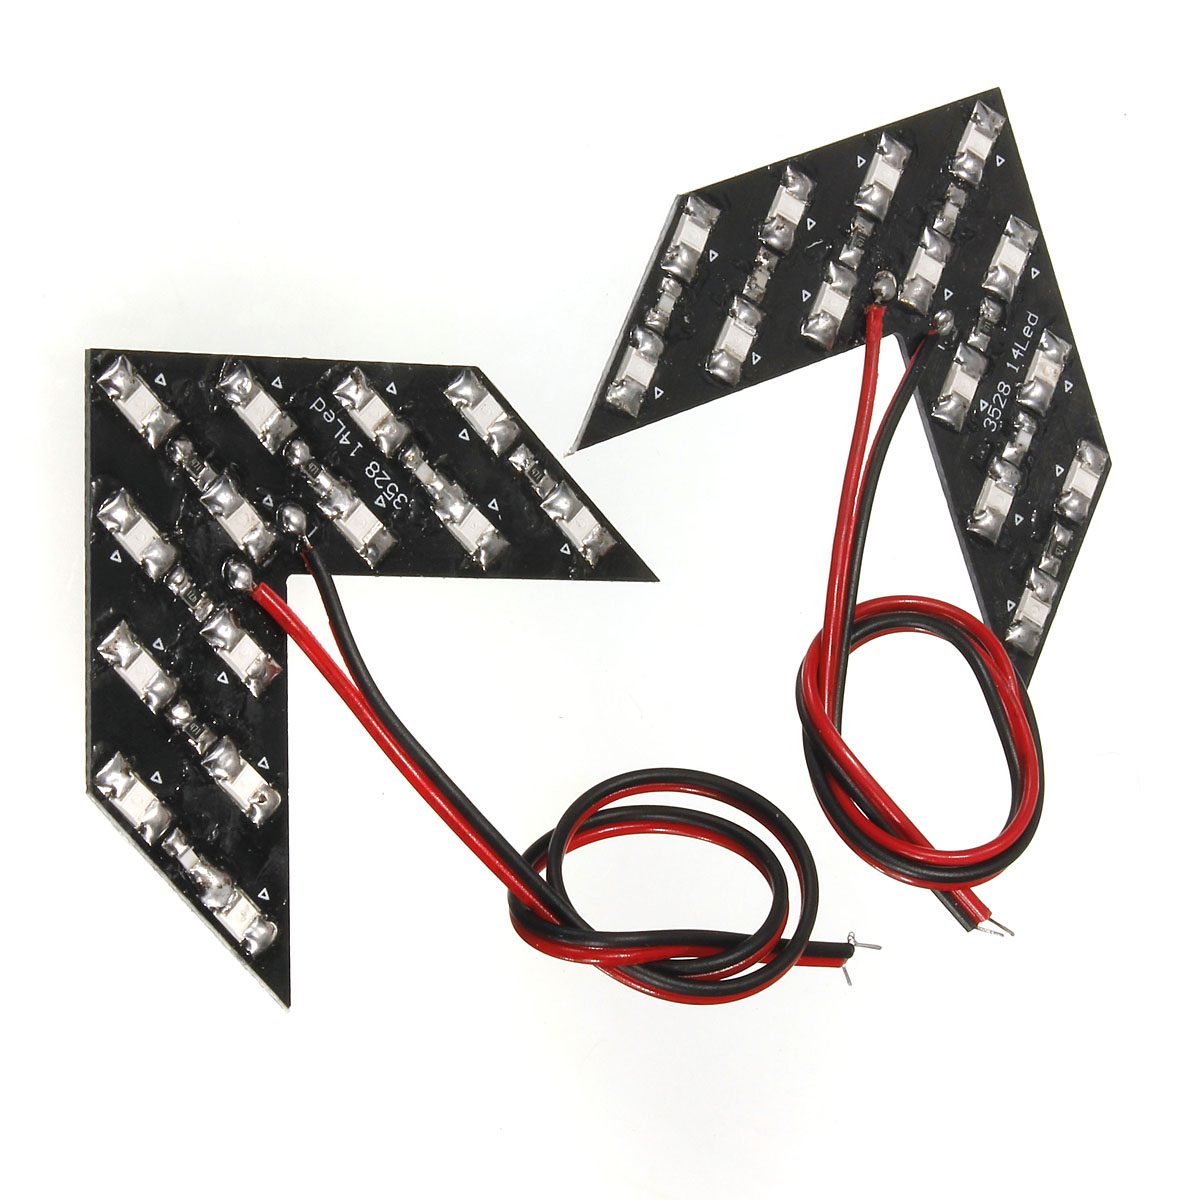 Pair DC12V 14SMD Arrow LED Panels Car Side Mirror Rear Turn Signal Indicator Lights